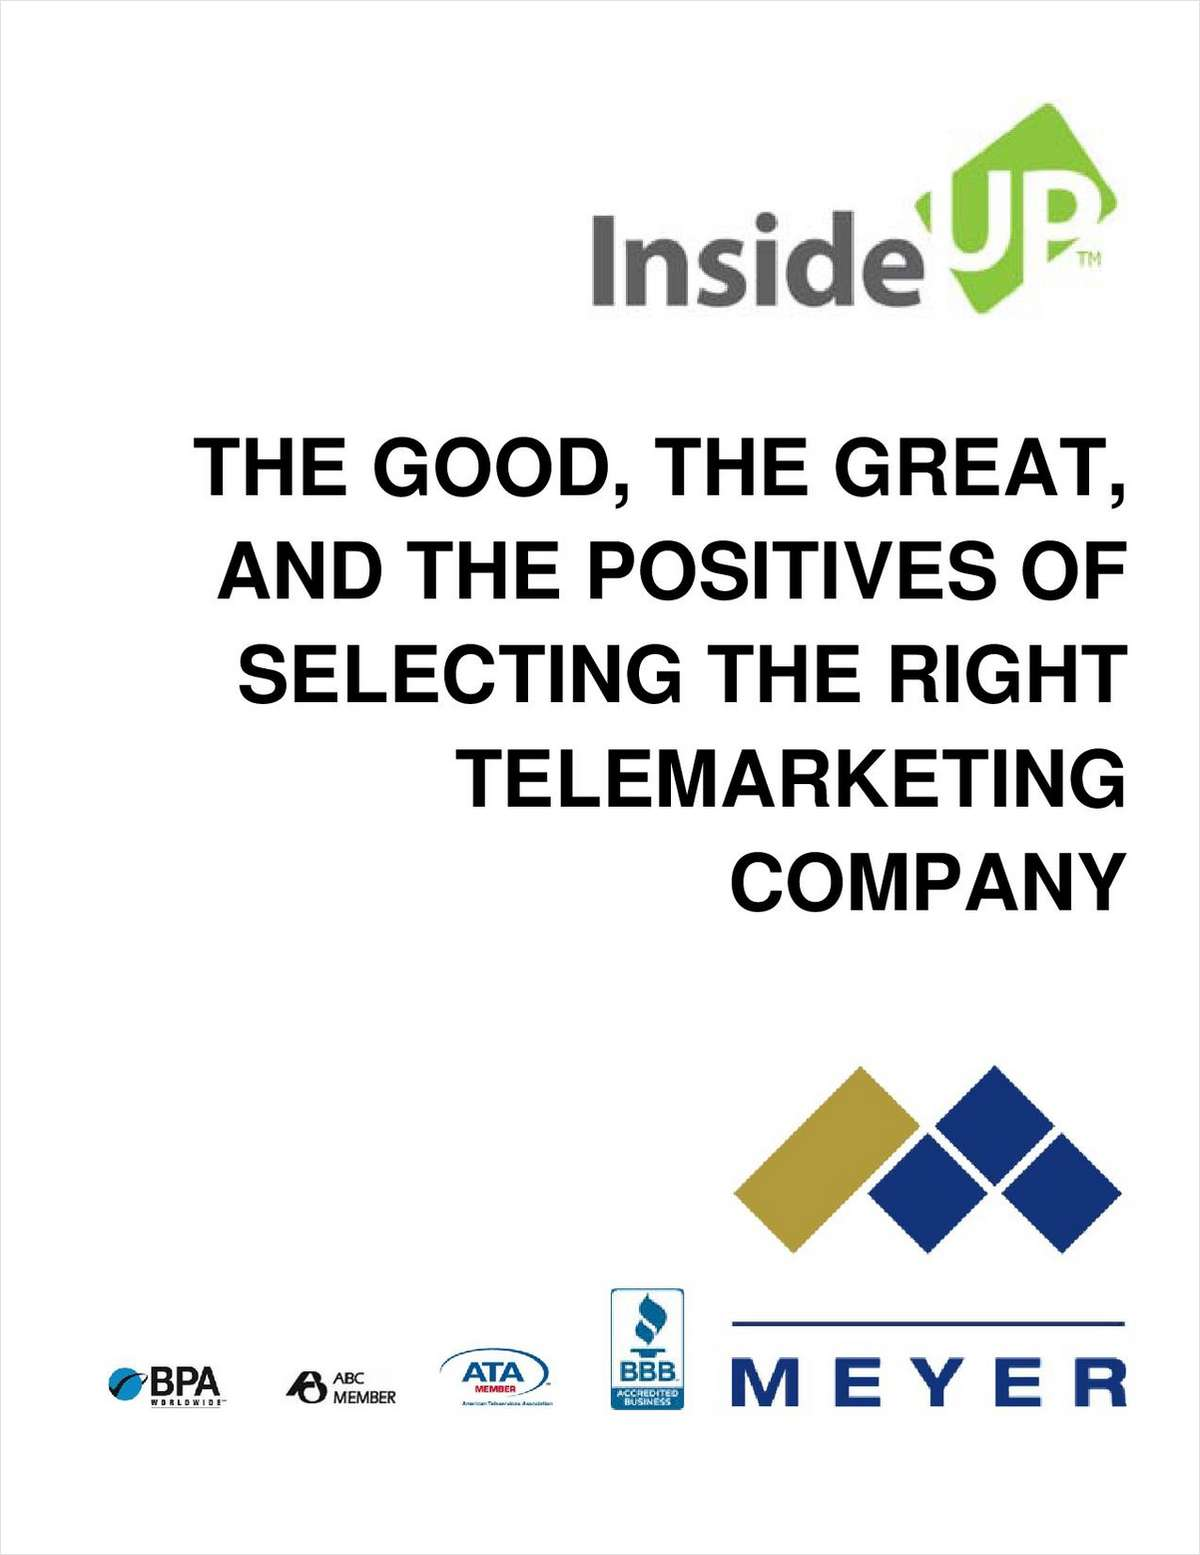 The Good, The Great And The Positives of Selecting The Right Telemarketing Company